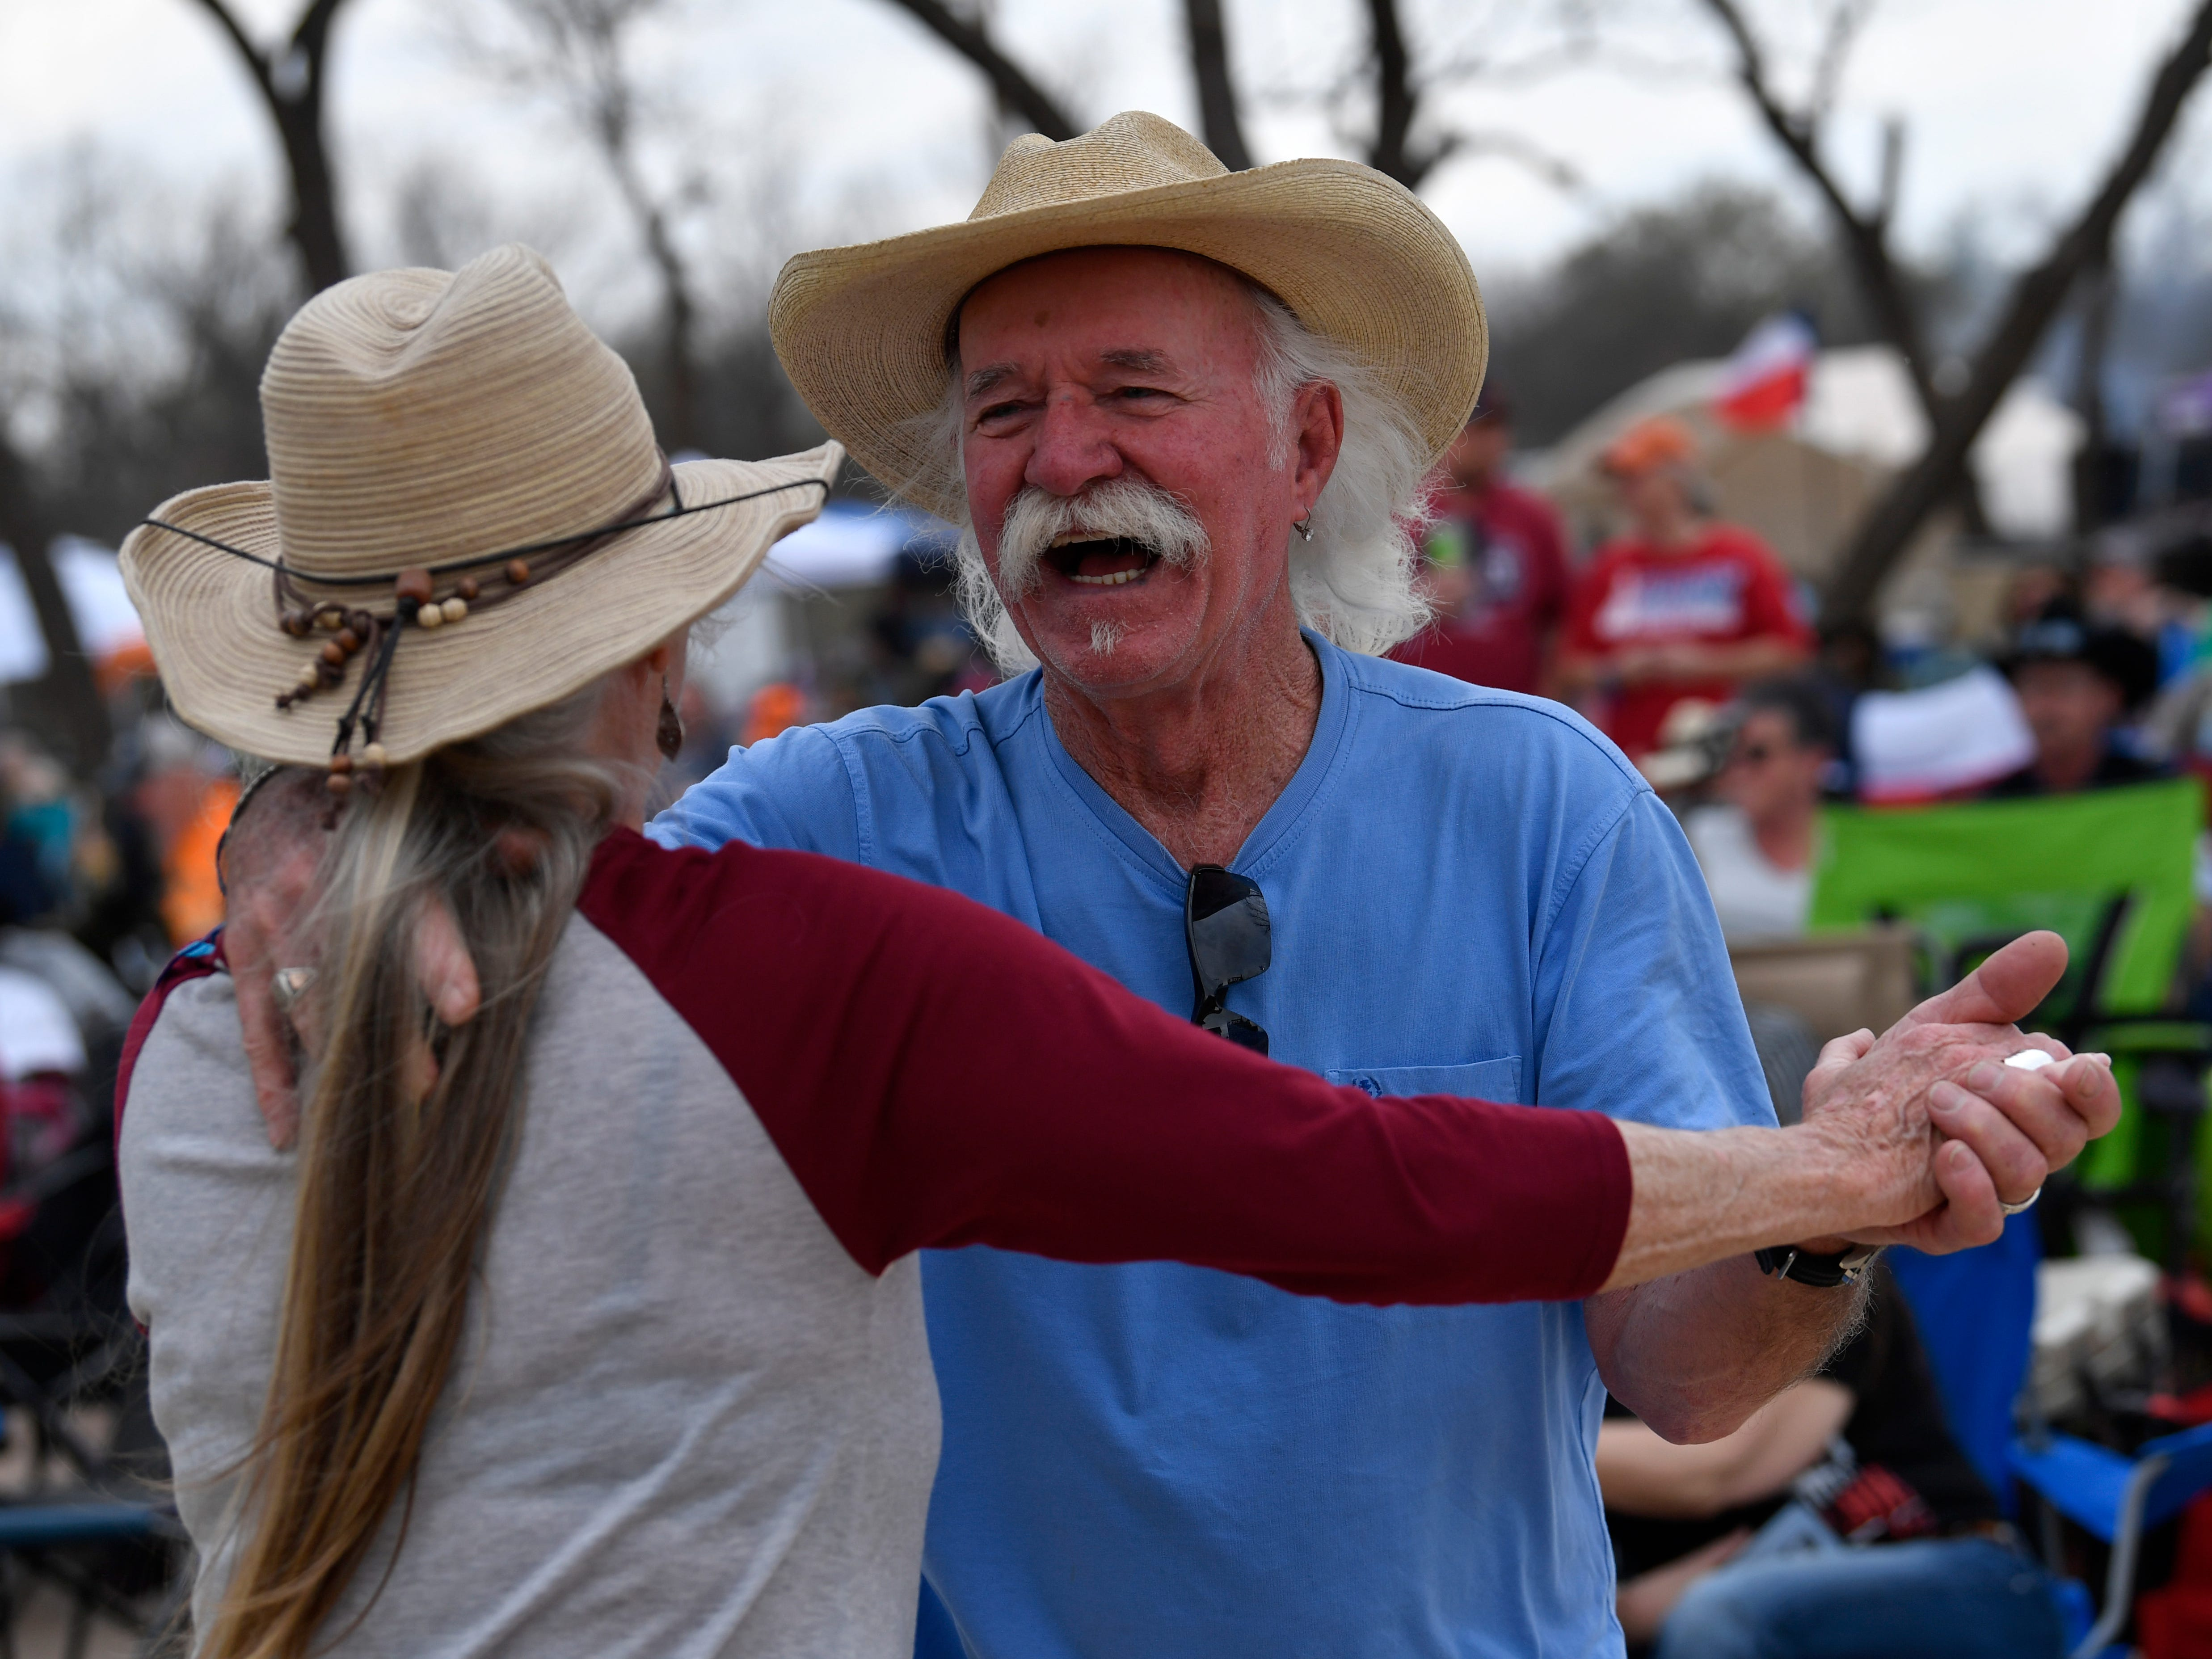 Bill Grisham dances with his wife Treva during Friday's Outlaws & Legends music festival March 22, 2019.